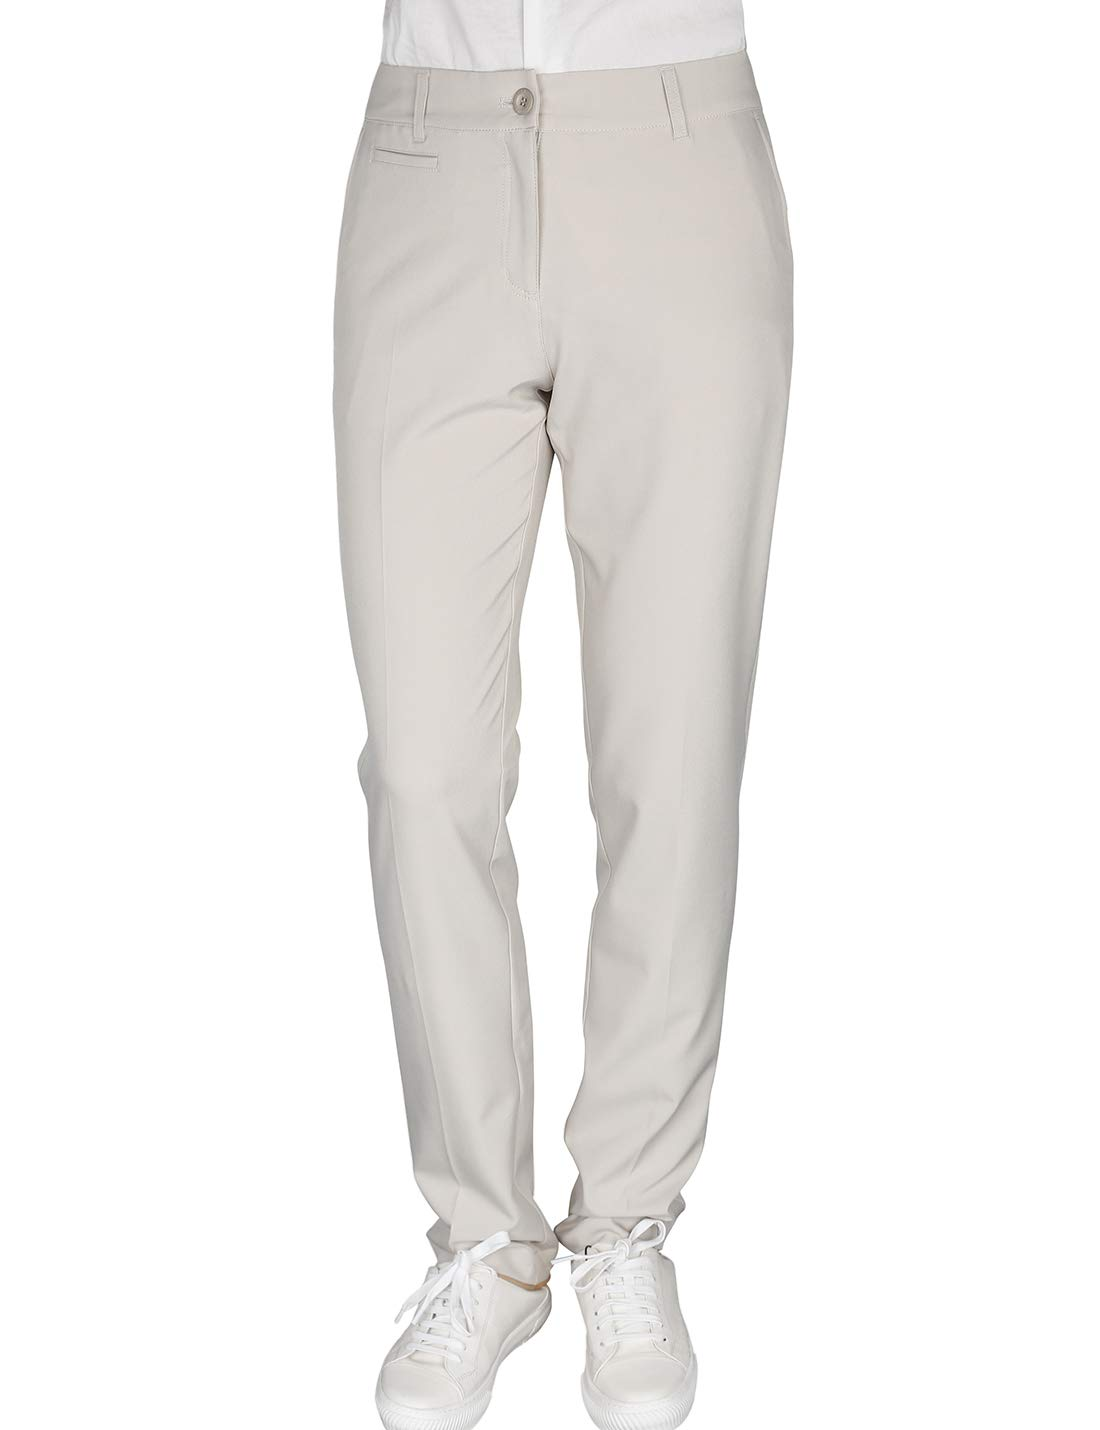 Women's Golf Pants Stretch Straight Lightweight Breathable Twill Work Chino Ladies Pants Size 10 Beige by Bakery